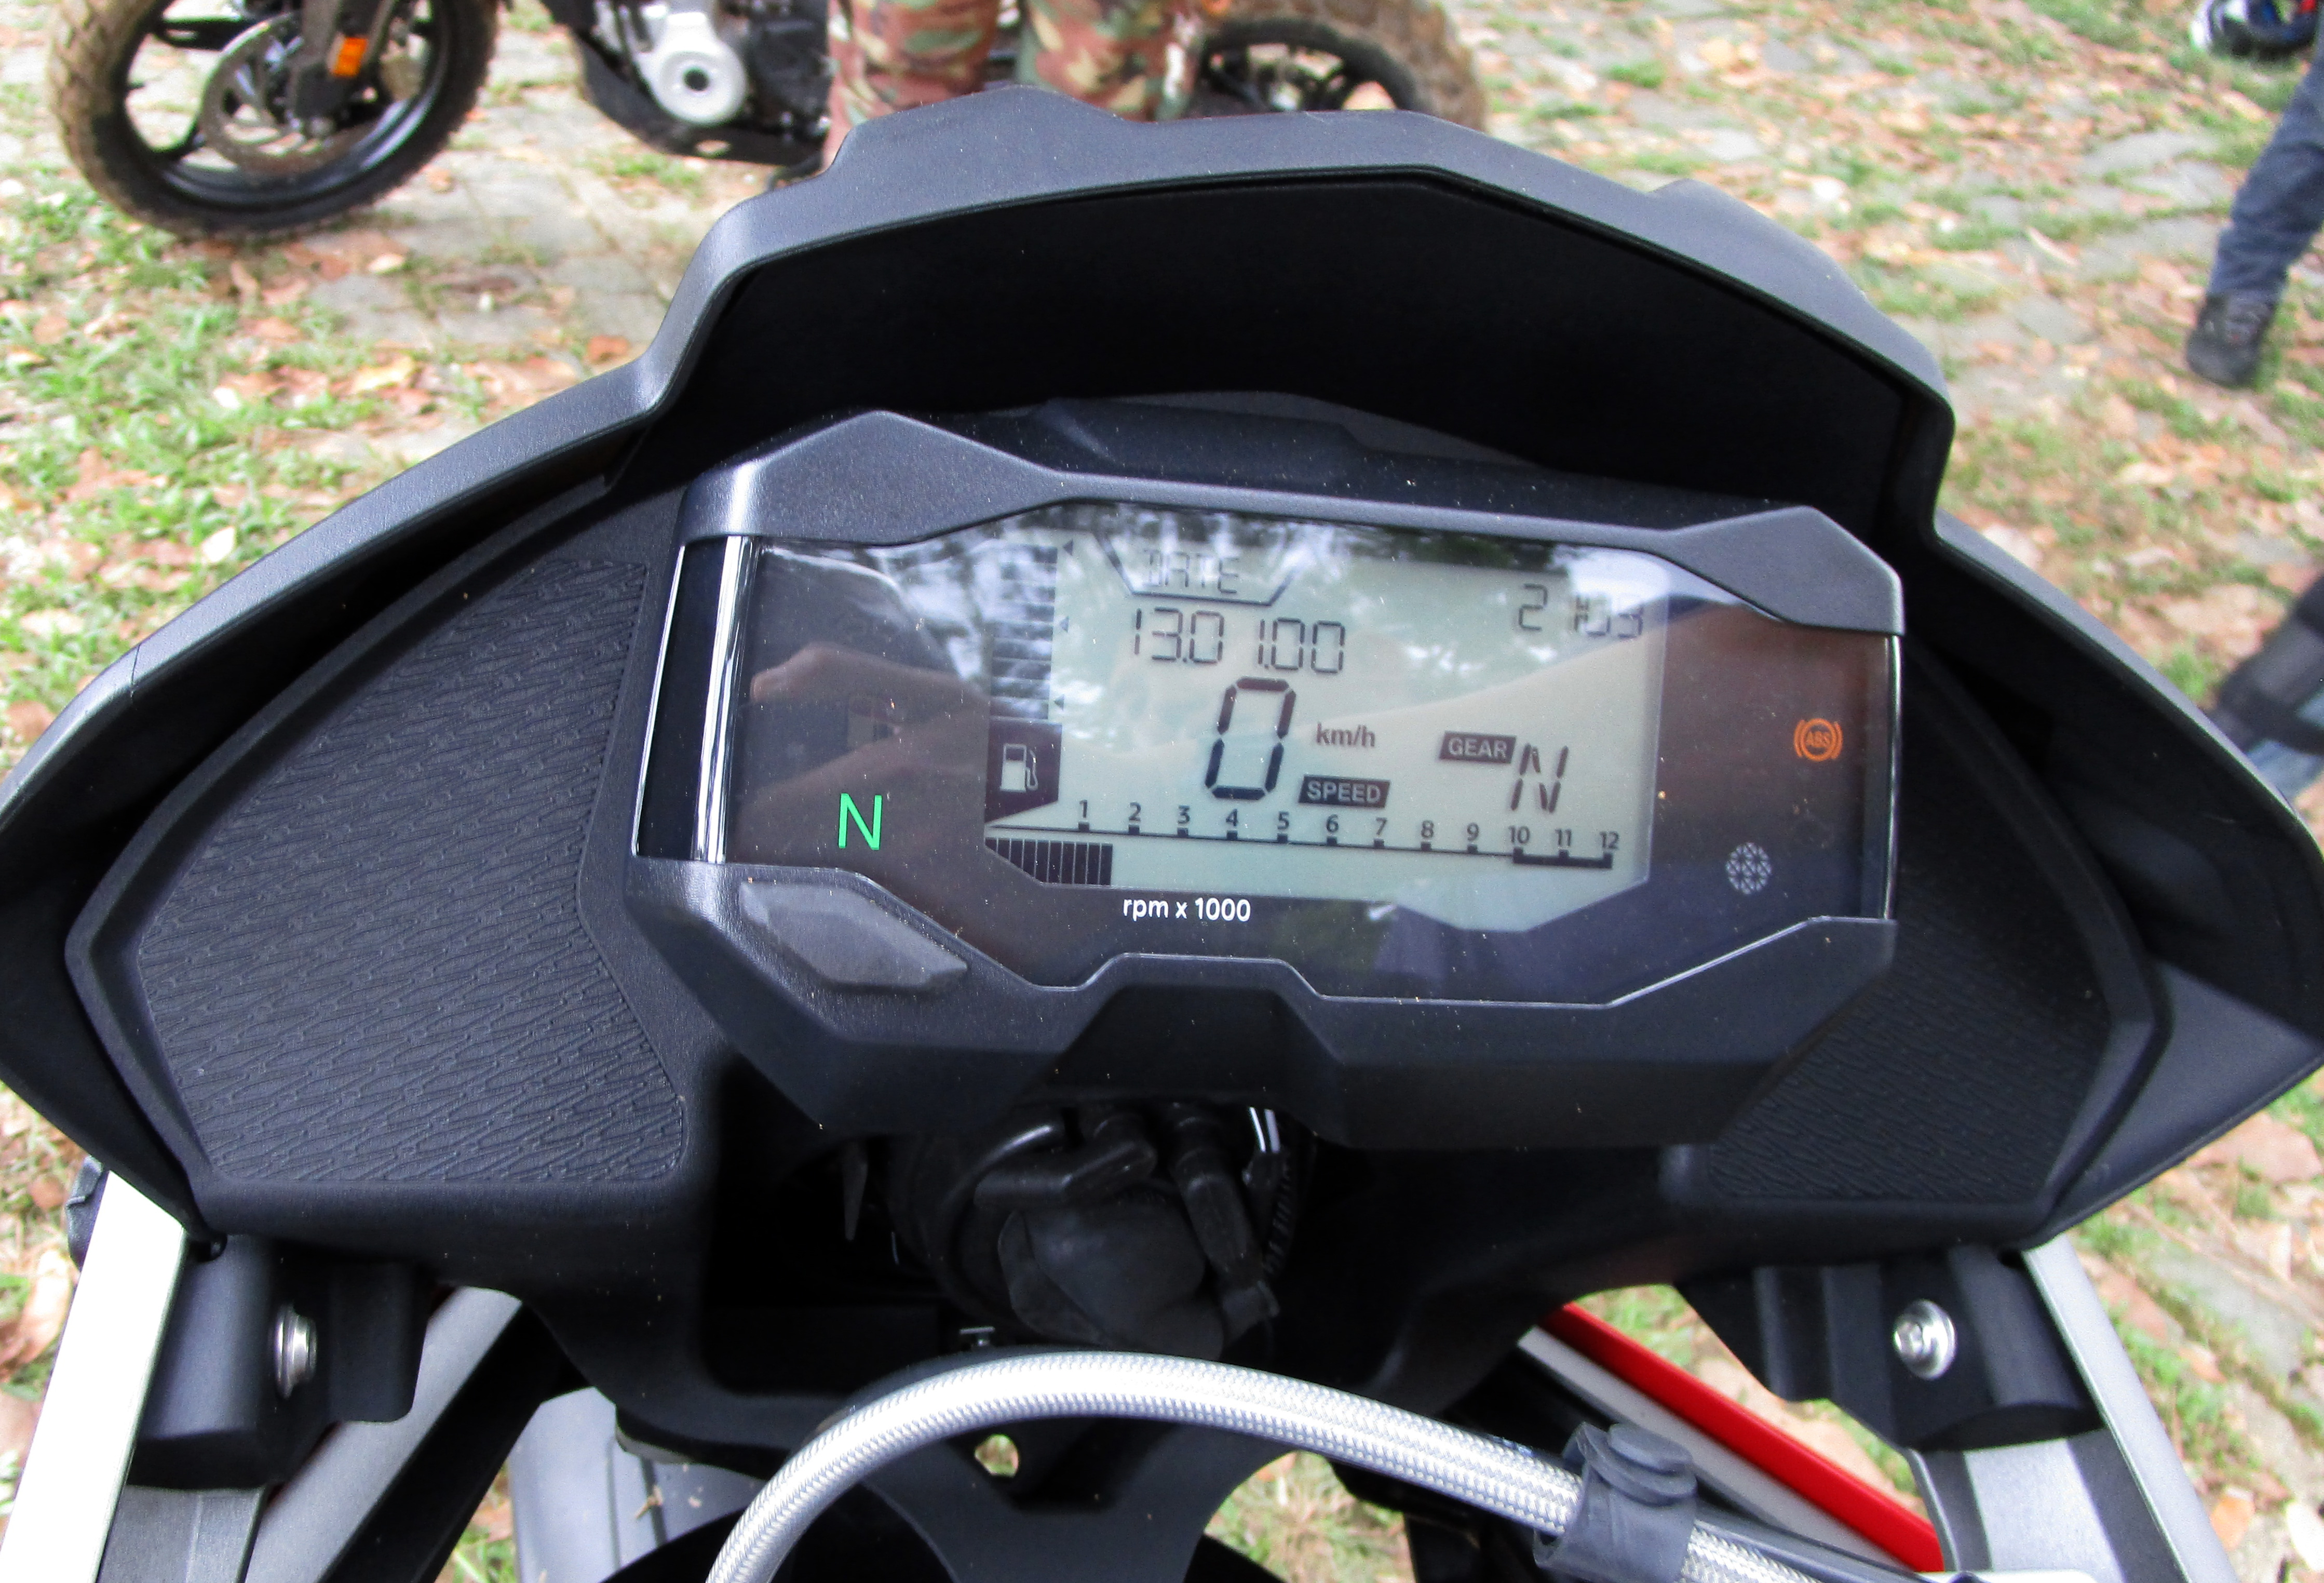 Instrument Cluster on the BMW G310GS